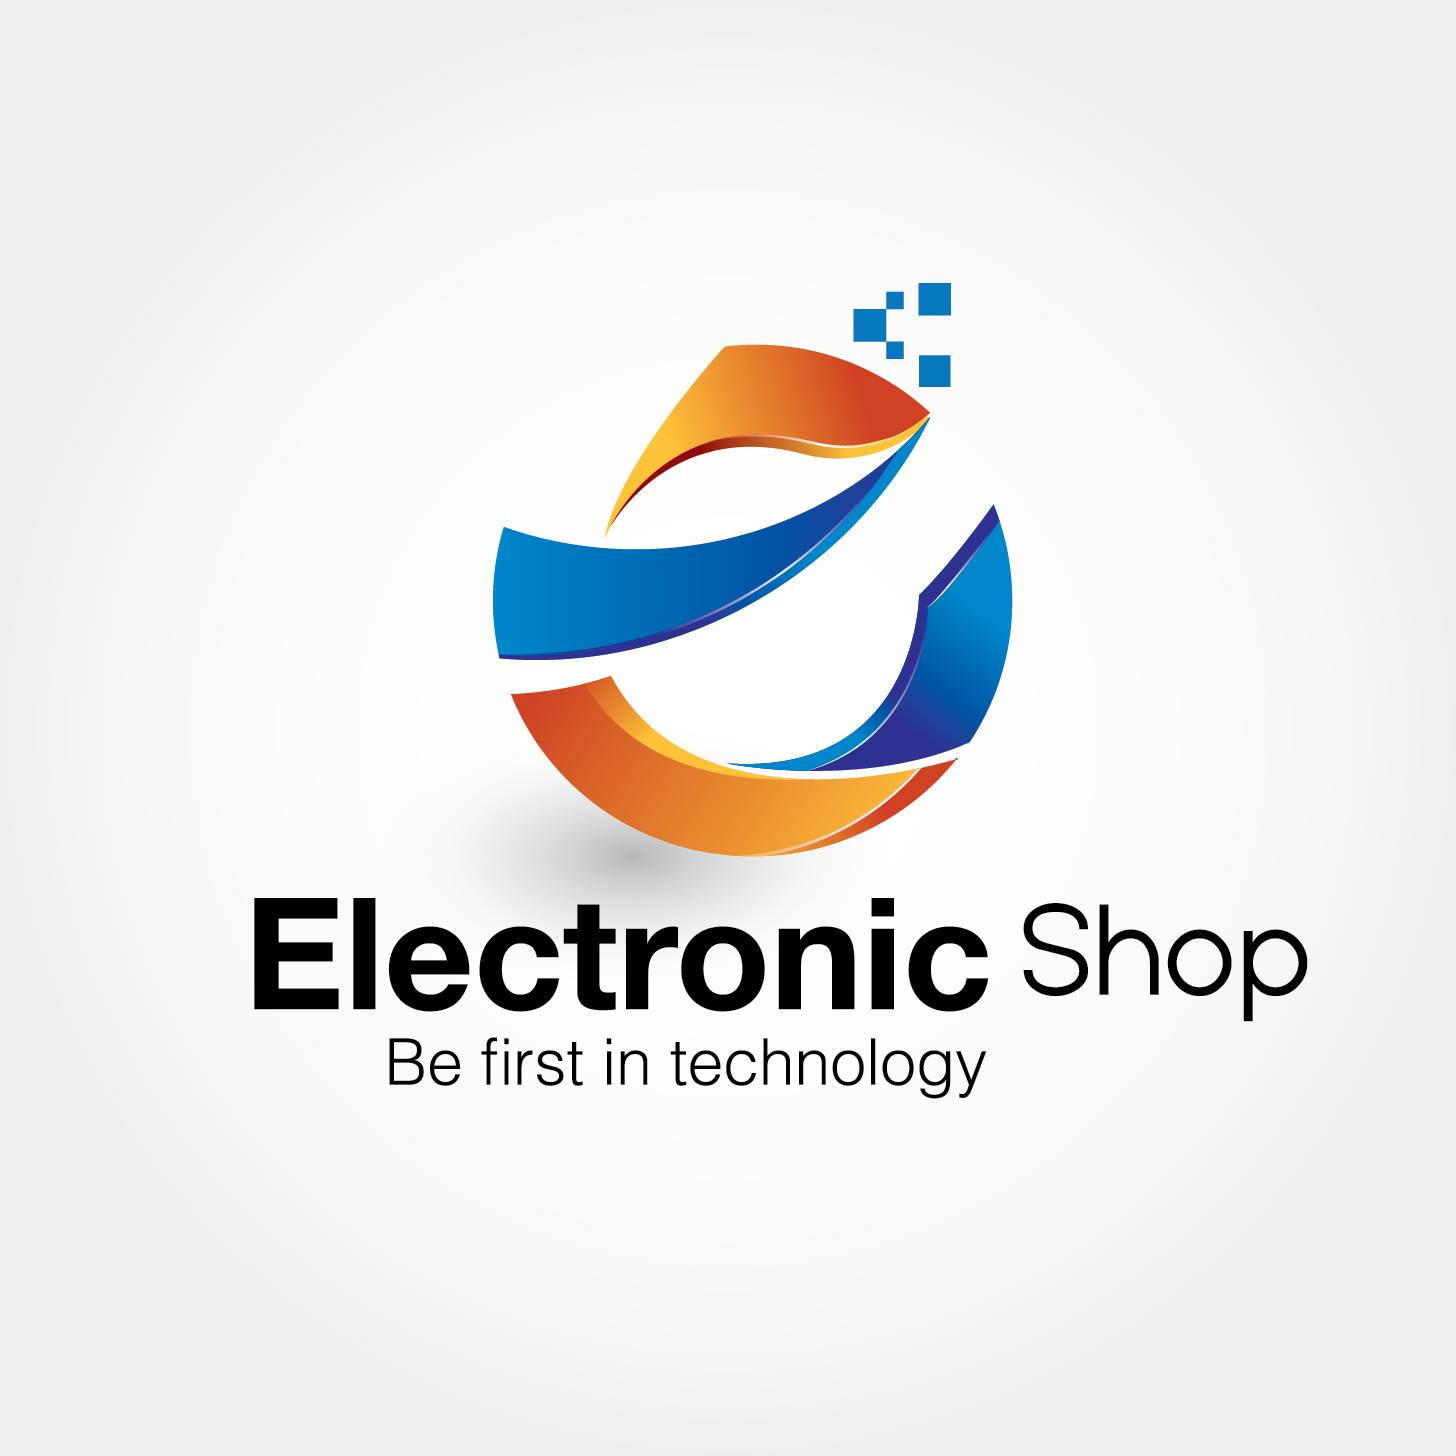 Electronic Shop Company